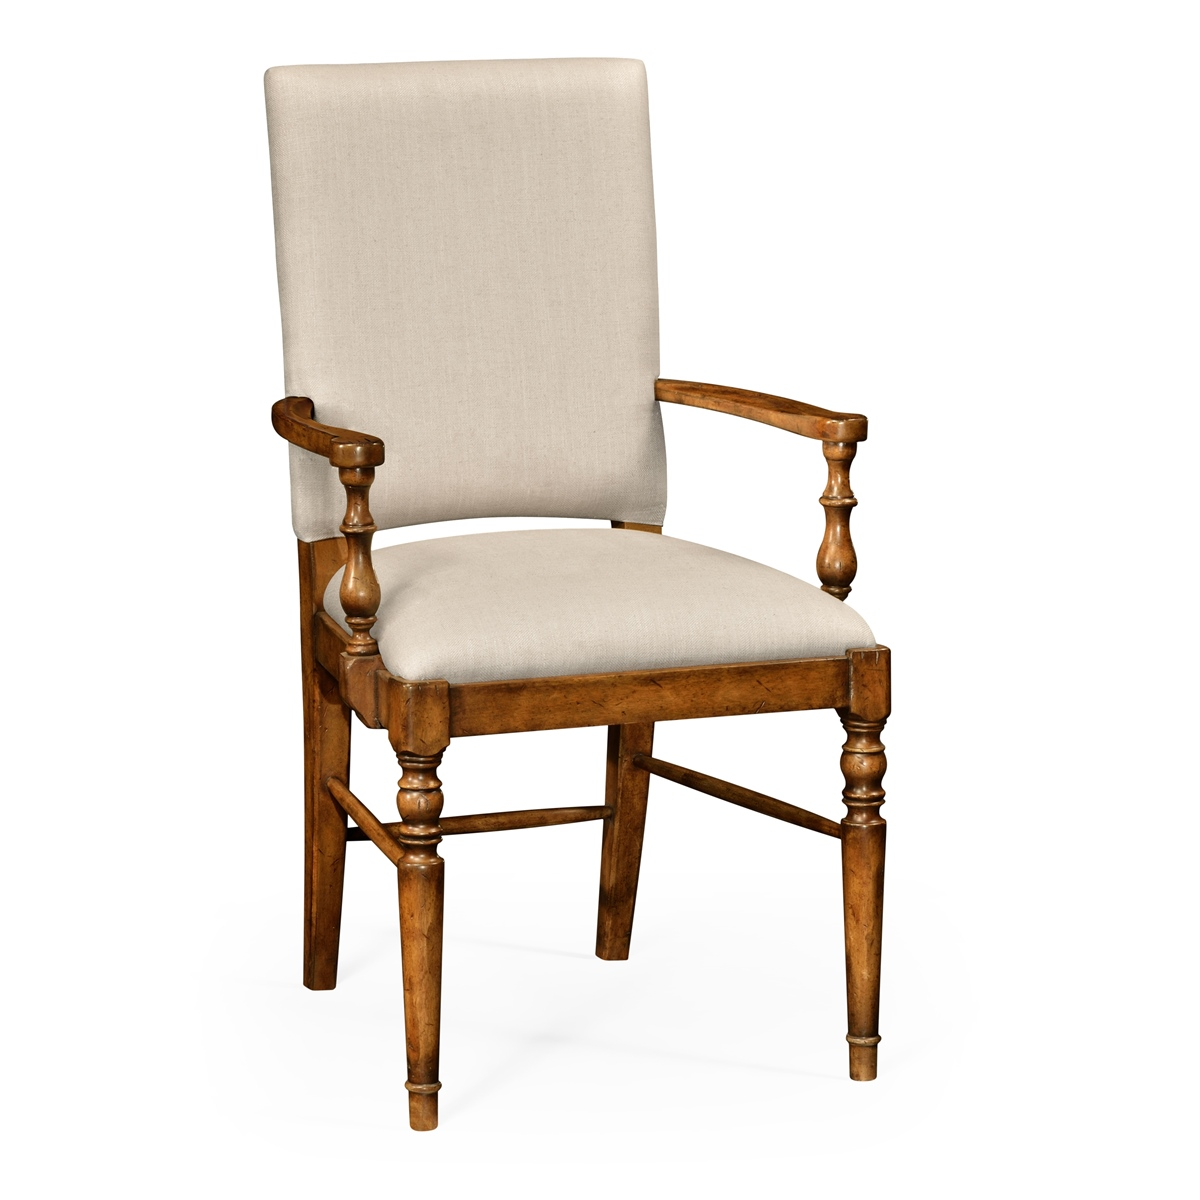 Reproduction English Walnut Dining Chair - Reproduction English Walnut Dining Chair English Antiques